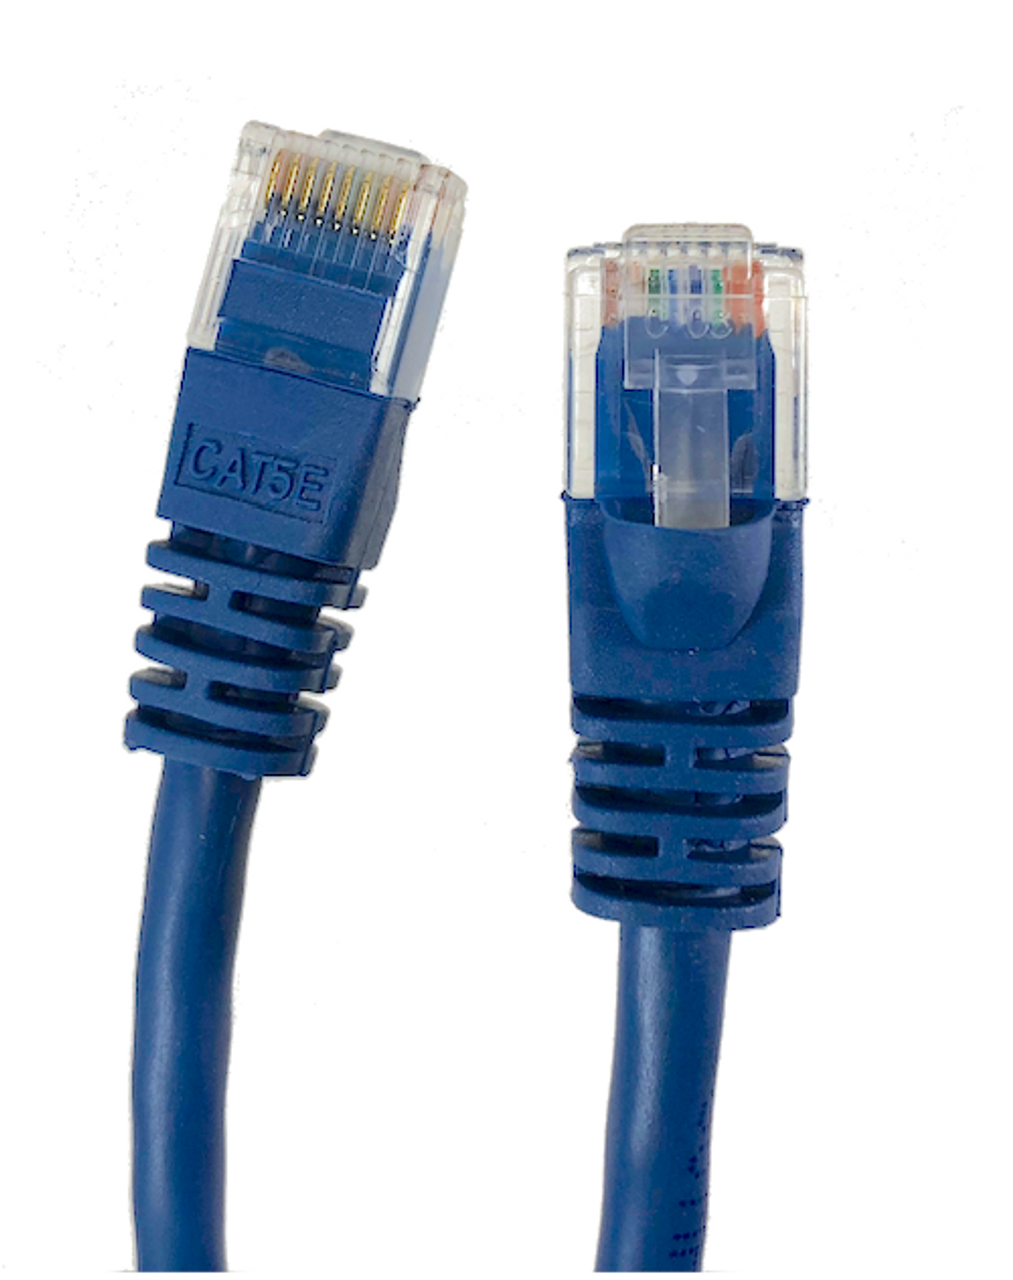 Category 5E UTP RJ45 Patch Cable Blue - 3 ft